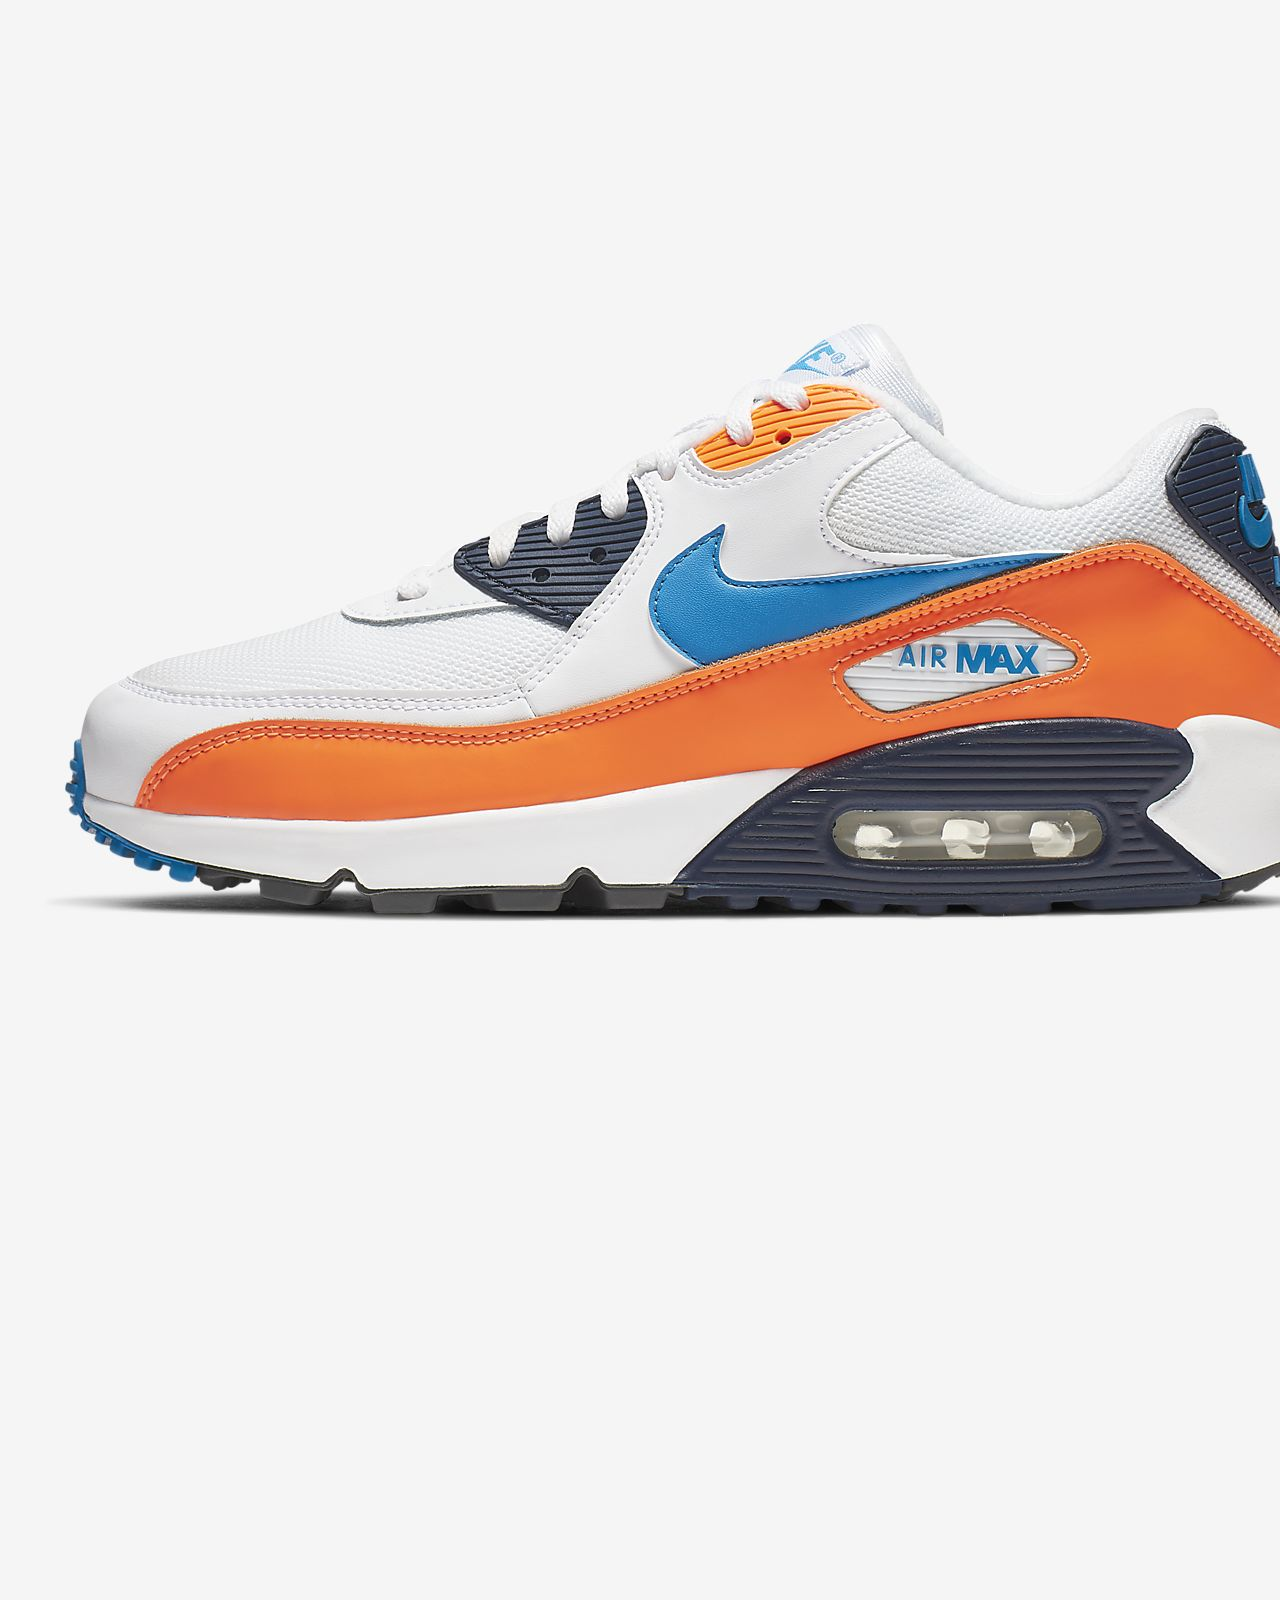 0a9594fc268 Nike Air Max 90 Essential Men s Shoe. Nike.com